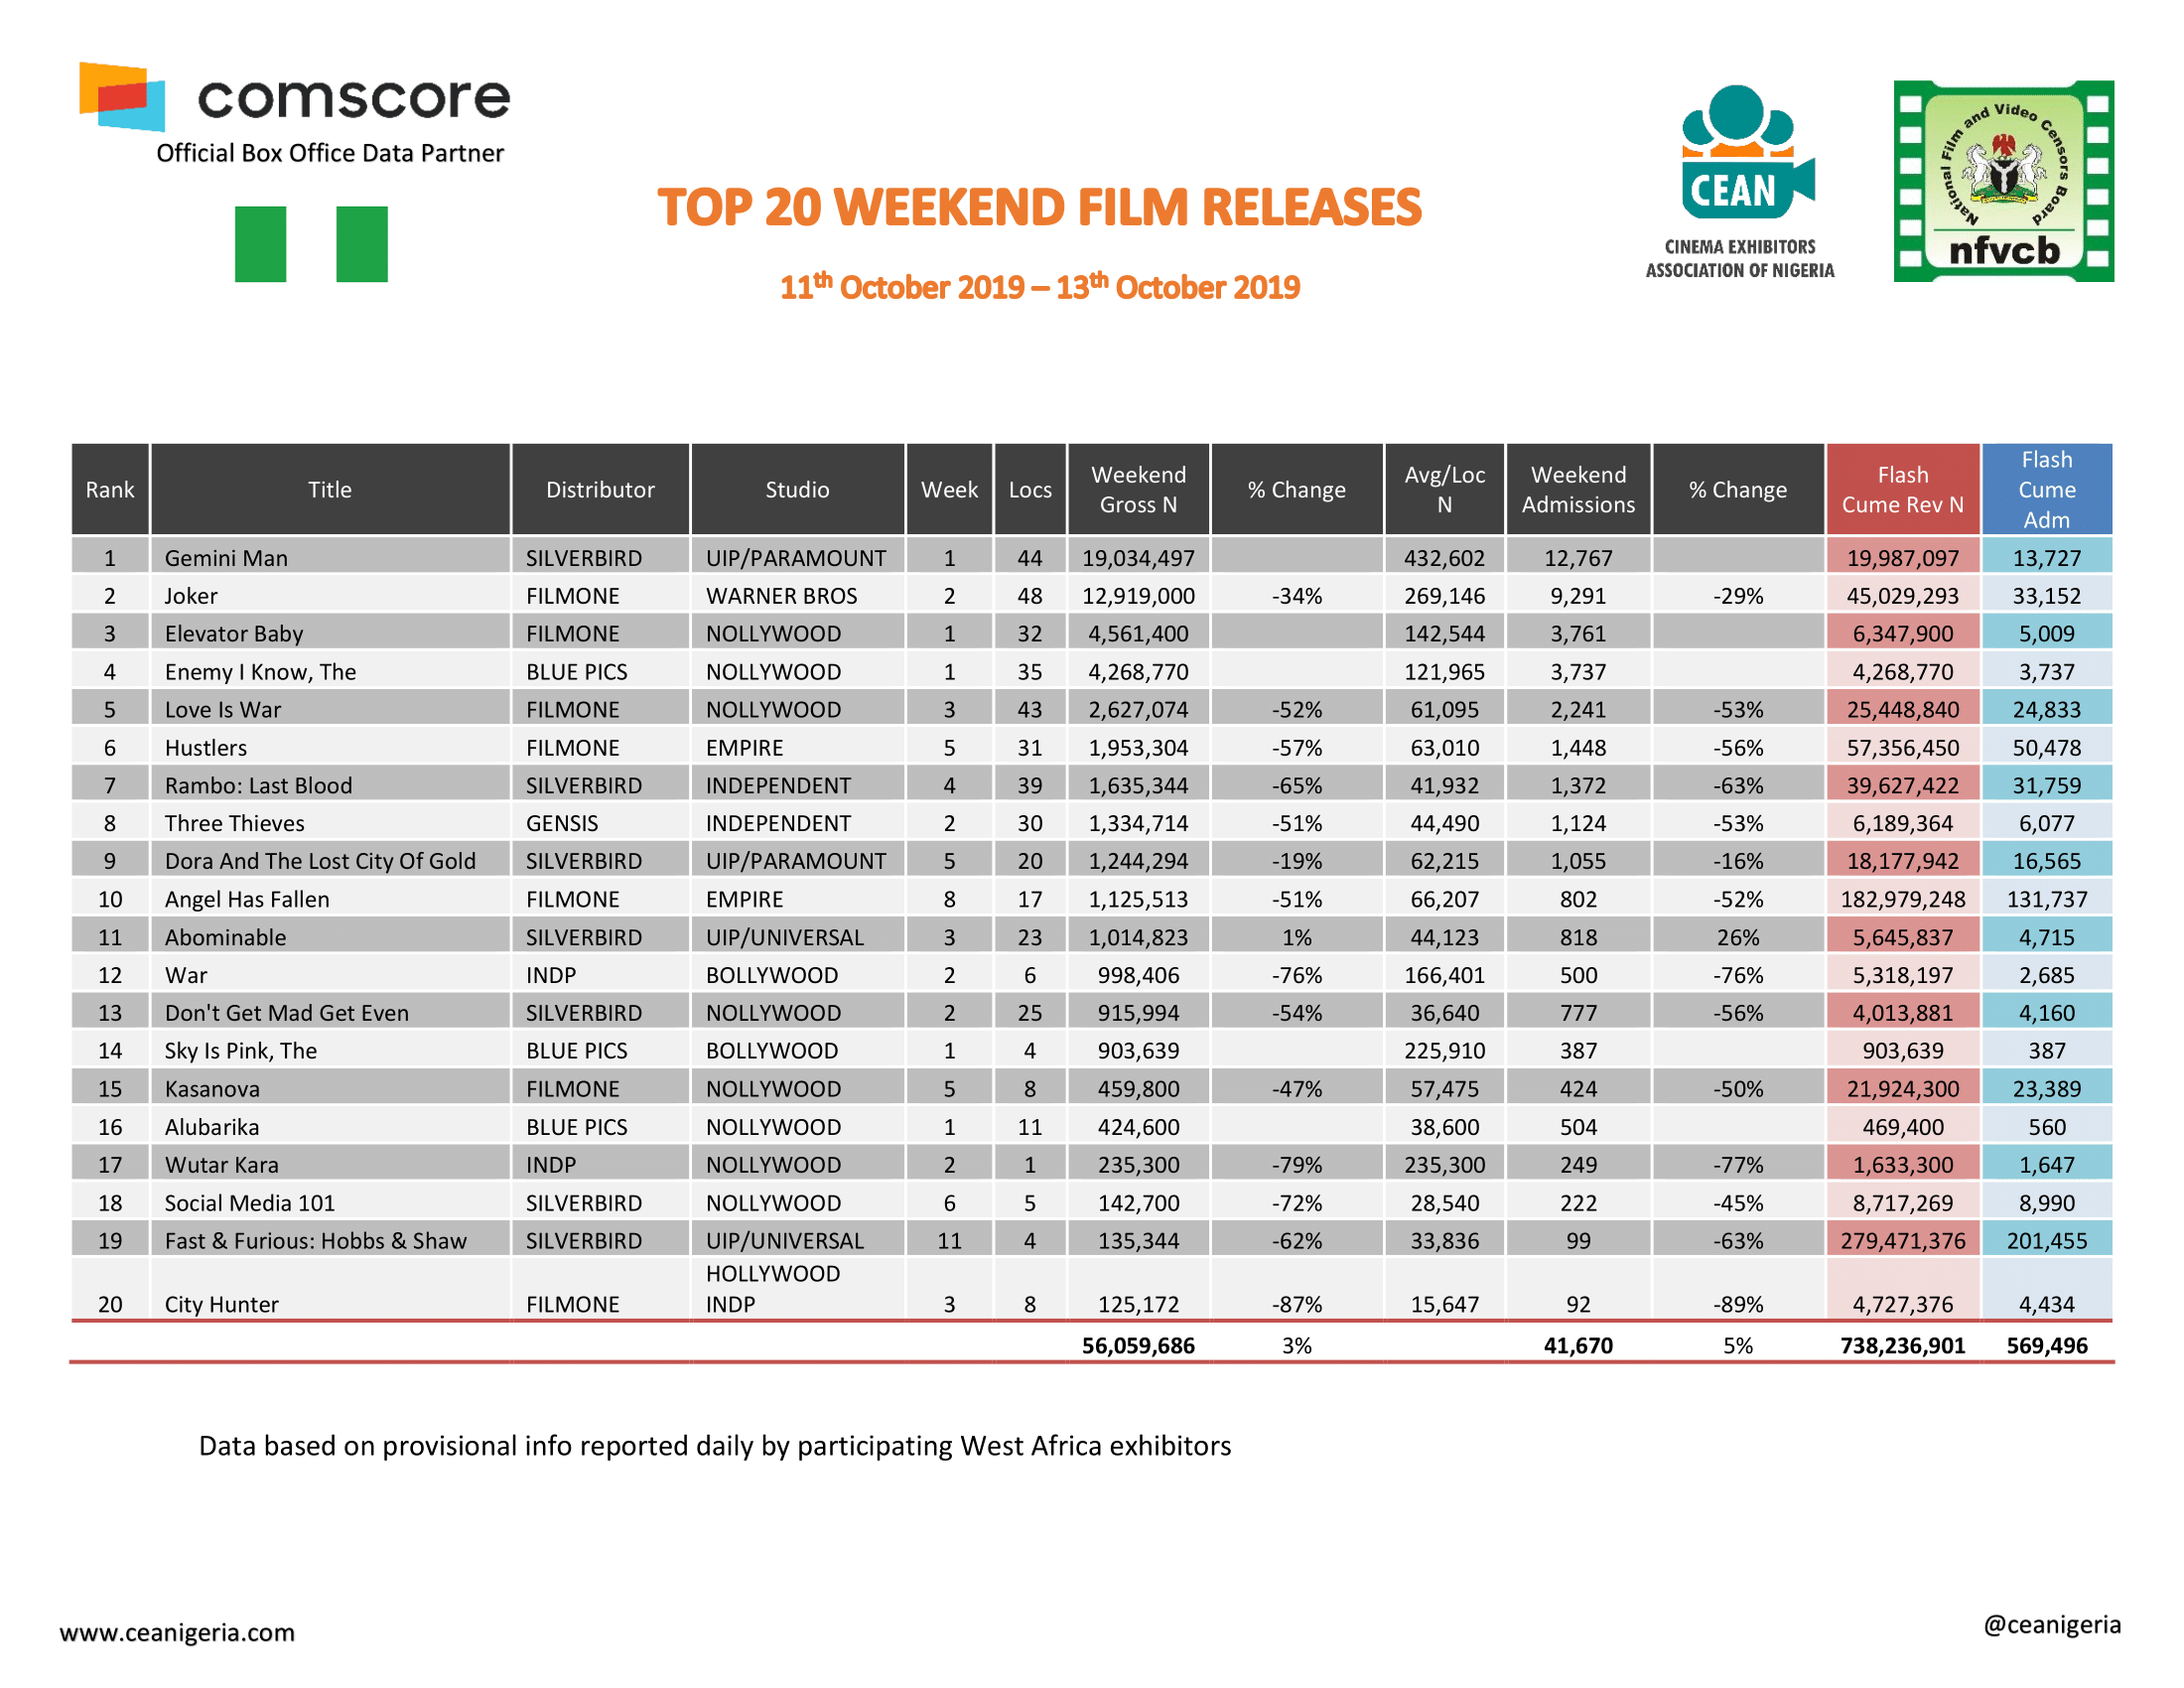 Top 20 films 11th Oct 13th Oct 2019 1